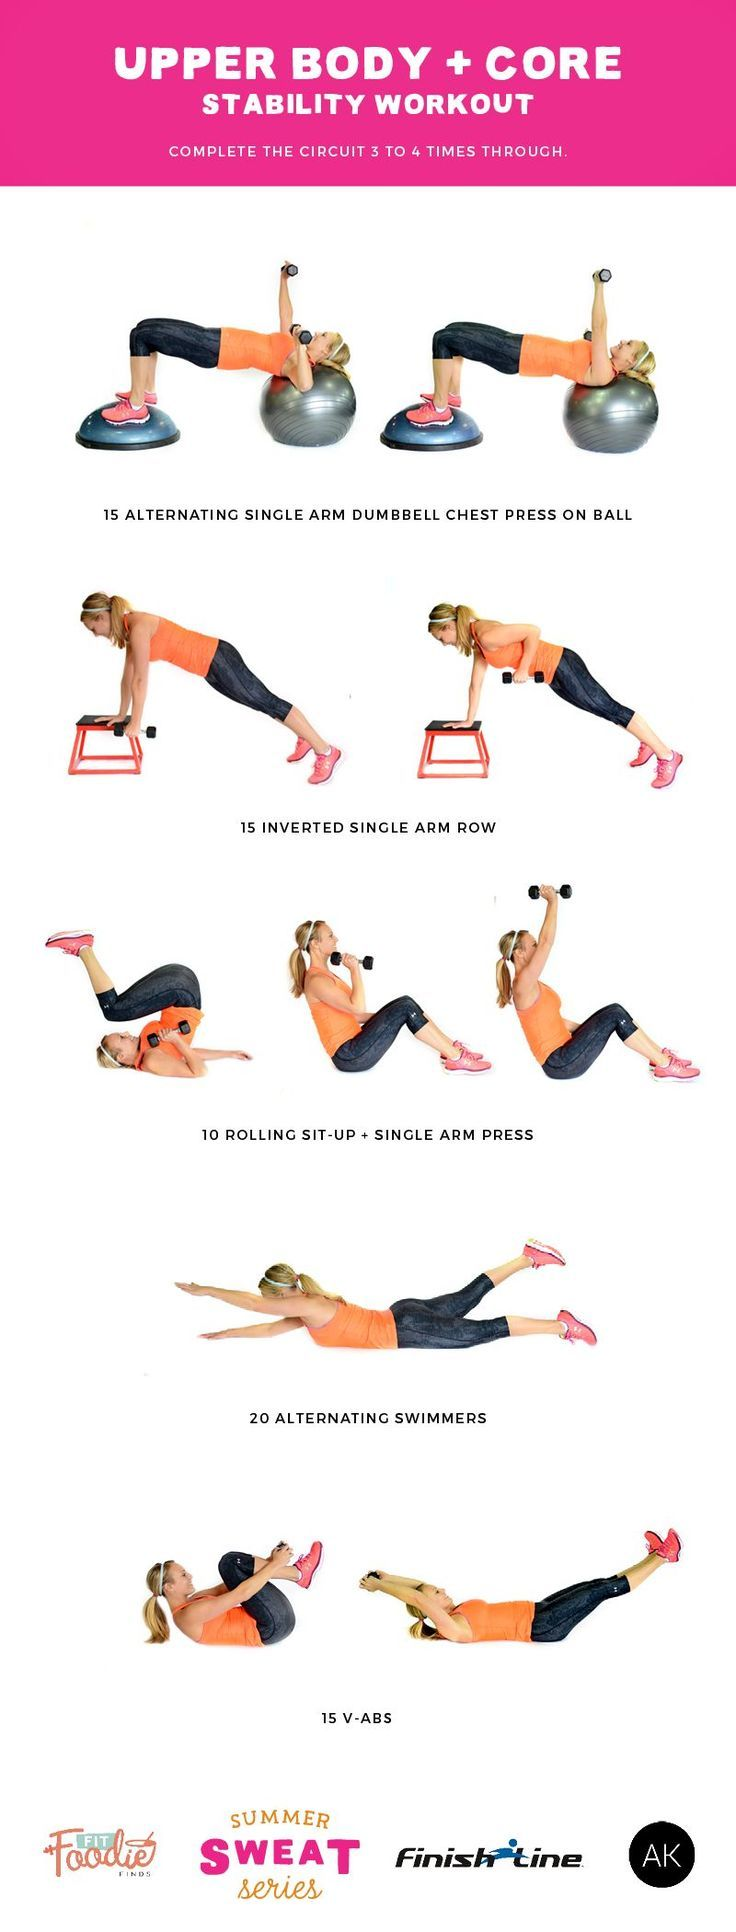 Do this stability workout that combines upper body